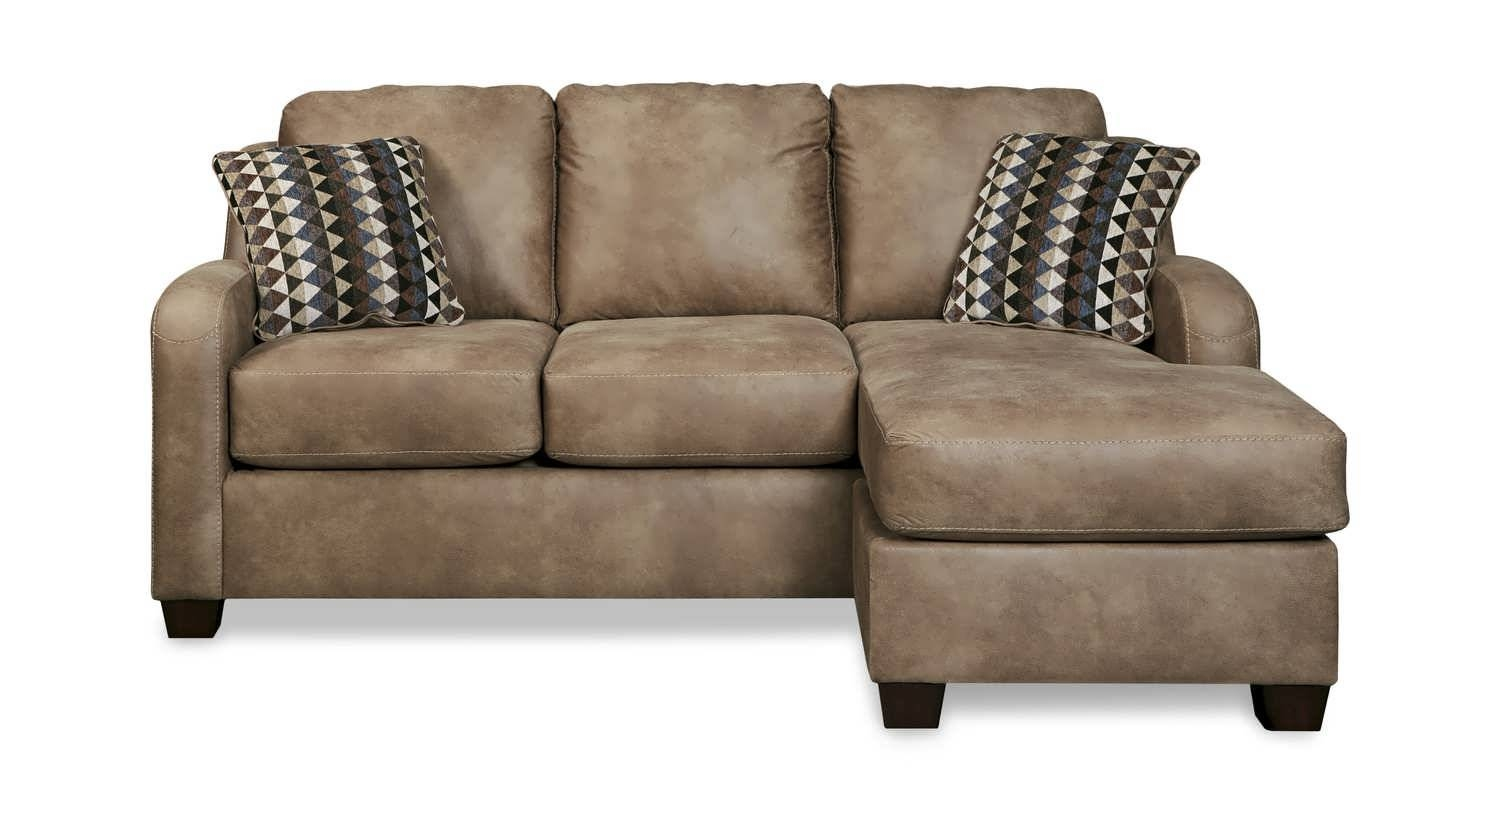 15 Best Narrow Depth Sofas